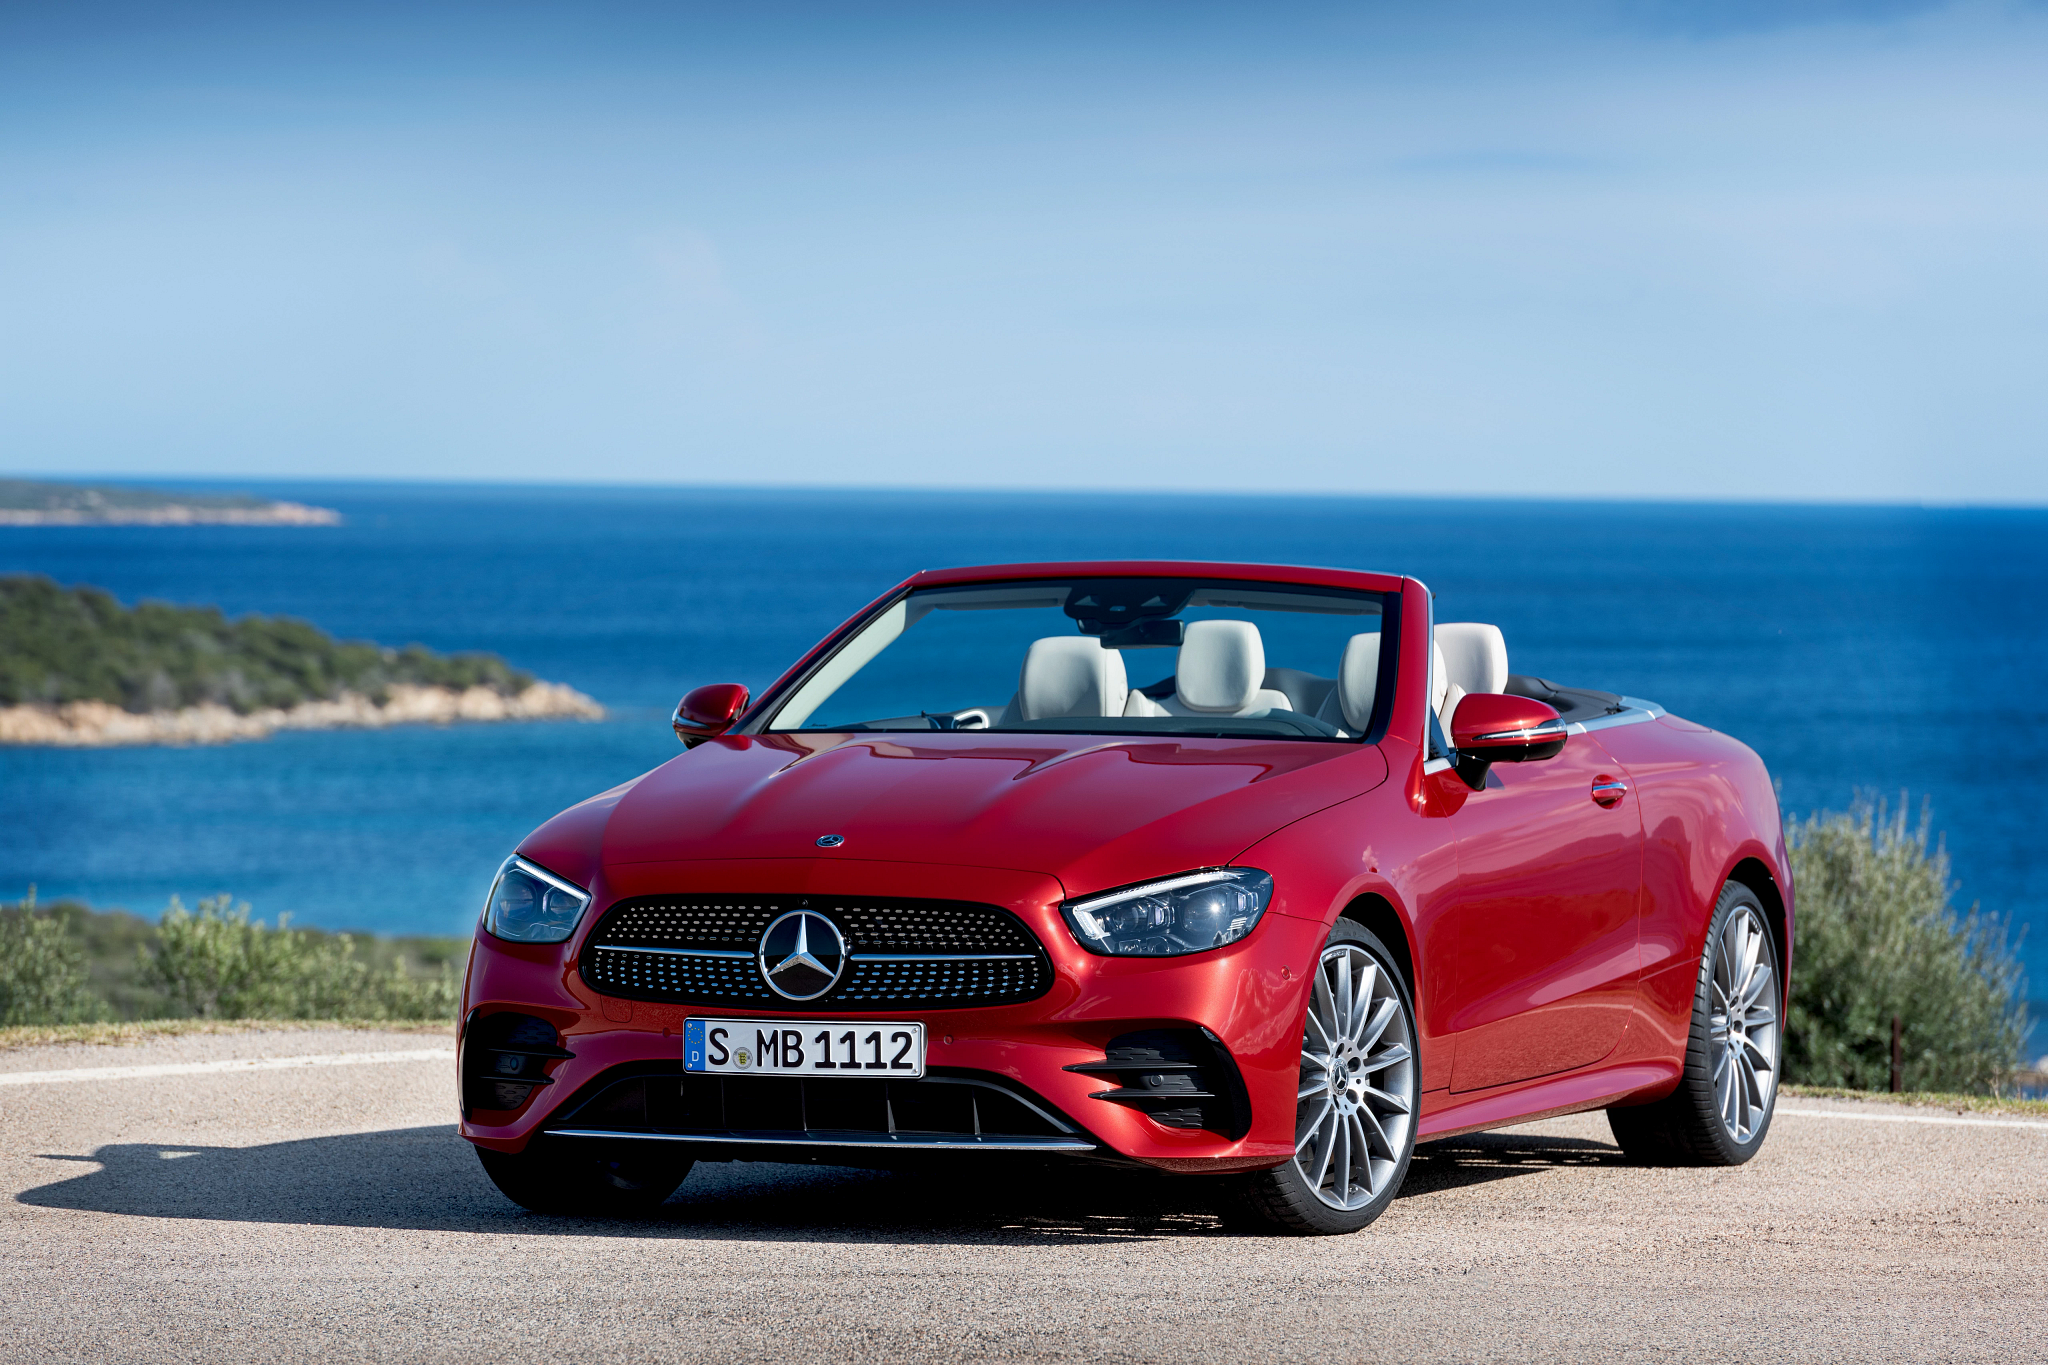 2021 Mercedes-Benz E-Class Coupe, Cabriolet: Got Very Specific Taste? This May Be Just Your Type